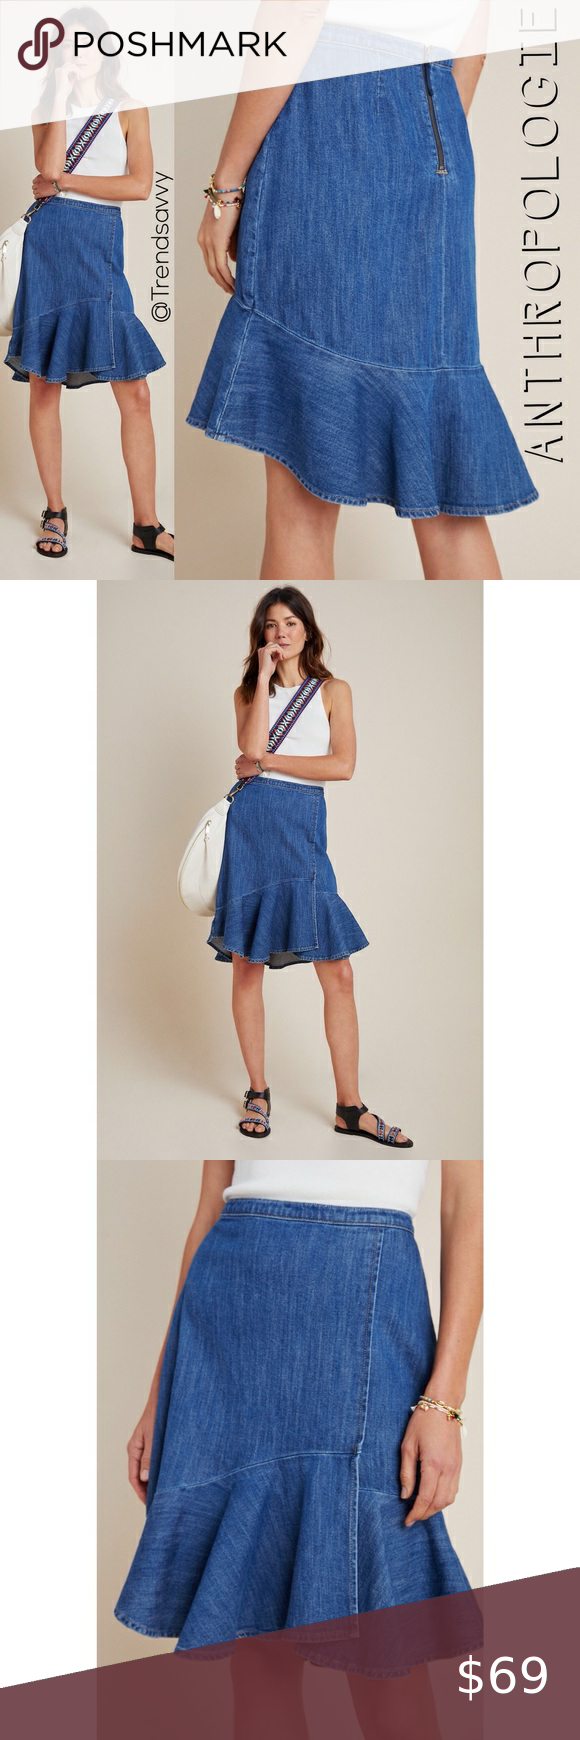 NWT ANTHROPOLOGIE PILCRO FLOUNCED DENIM MINI SKIRT NWT ANTHROPOLOGIE PILCRO FLOUNCED DENIM MINI SKIRT SIZE 8  BRAND NEW WITH TAGS  Rendered in our signature denim, this flounced mini skirt puts an elevated twist on laidback styling - pair it with a sleek cami or graphic tee for a polished, ready-for-anything ensemble.  99% cotton 1% lycra Mini silhouette Flounced hem Back zip Machine wash 22